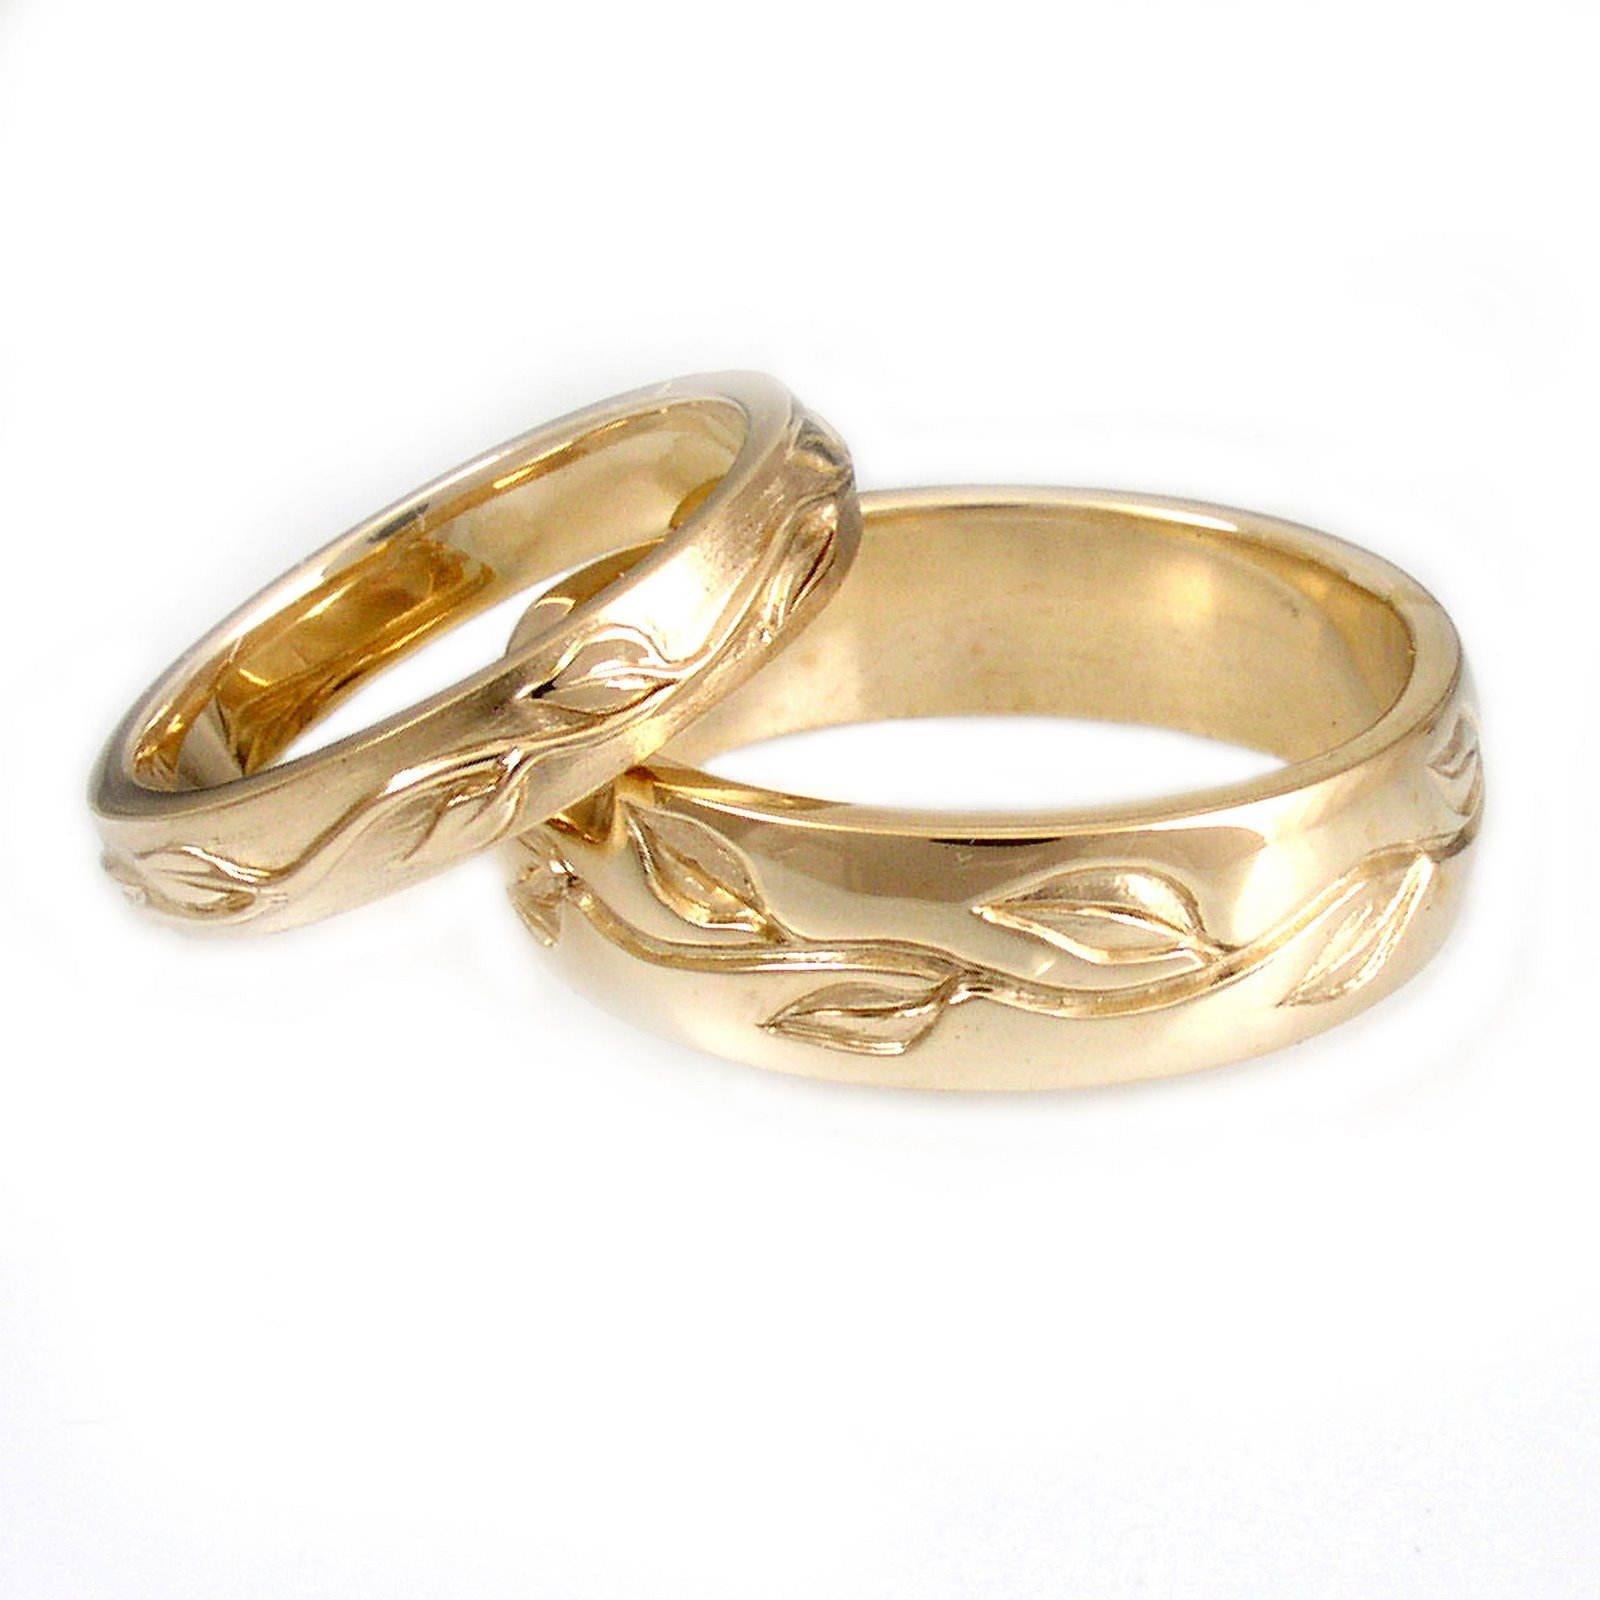 Eco Wedding Rings by greenKarat.  (PRNewsFoto/greenKarat) (Newscom TagID: prnphotos075002)     [Photo via Newscom]